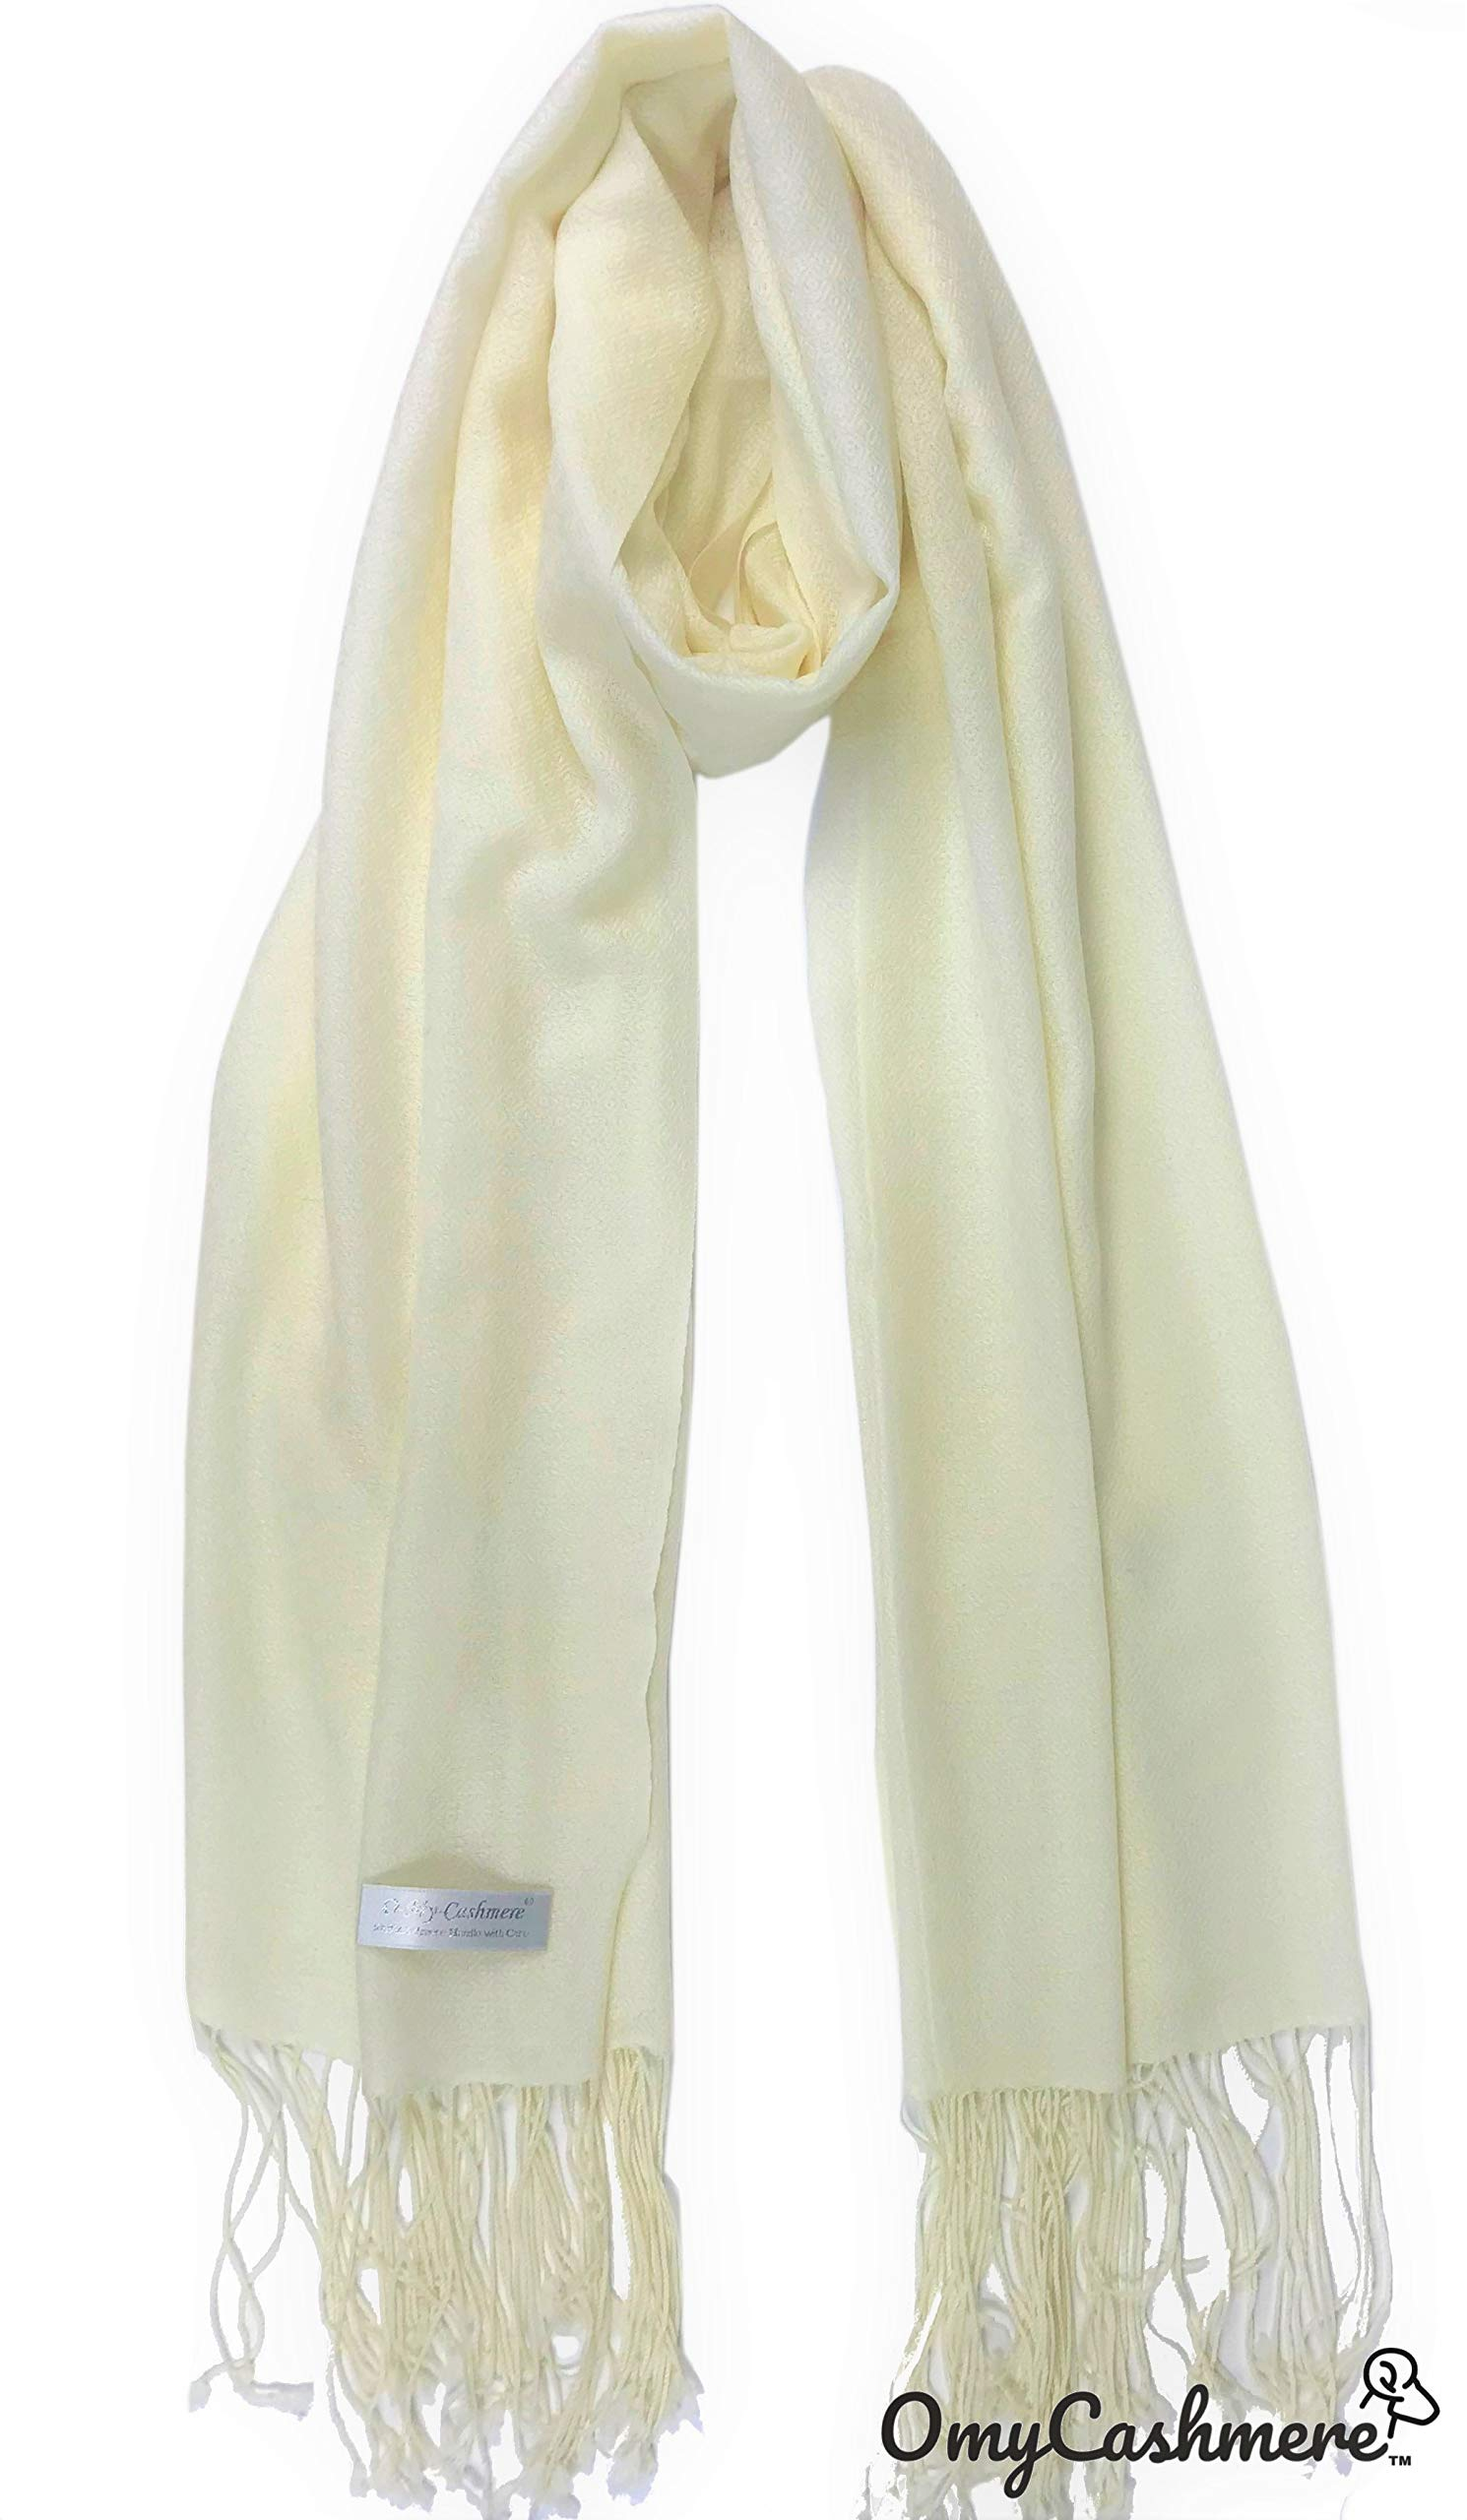 100% Cashmere Shawl Scarf Travel Wrap Stole Lightweight Tissue Weight Extra Large Solid Color with Gift Box (Ivory)